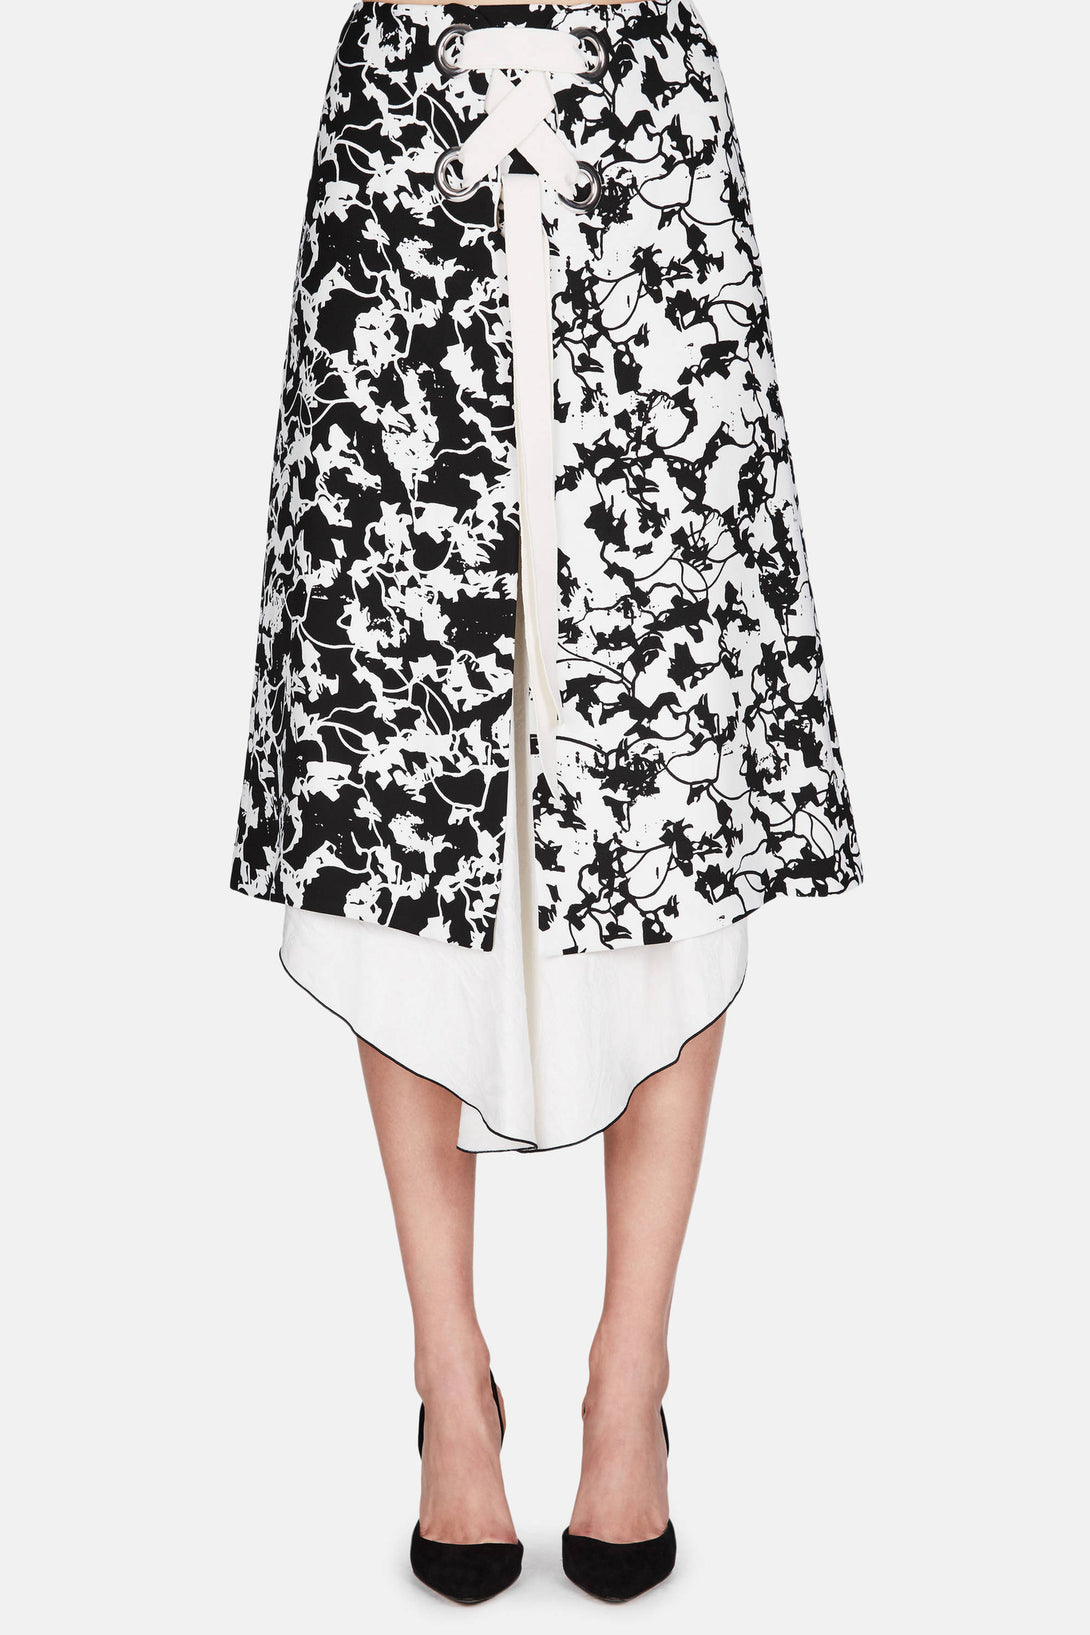 Printed A-Line Skirt - Black/Off-White